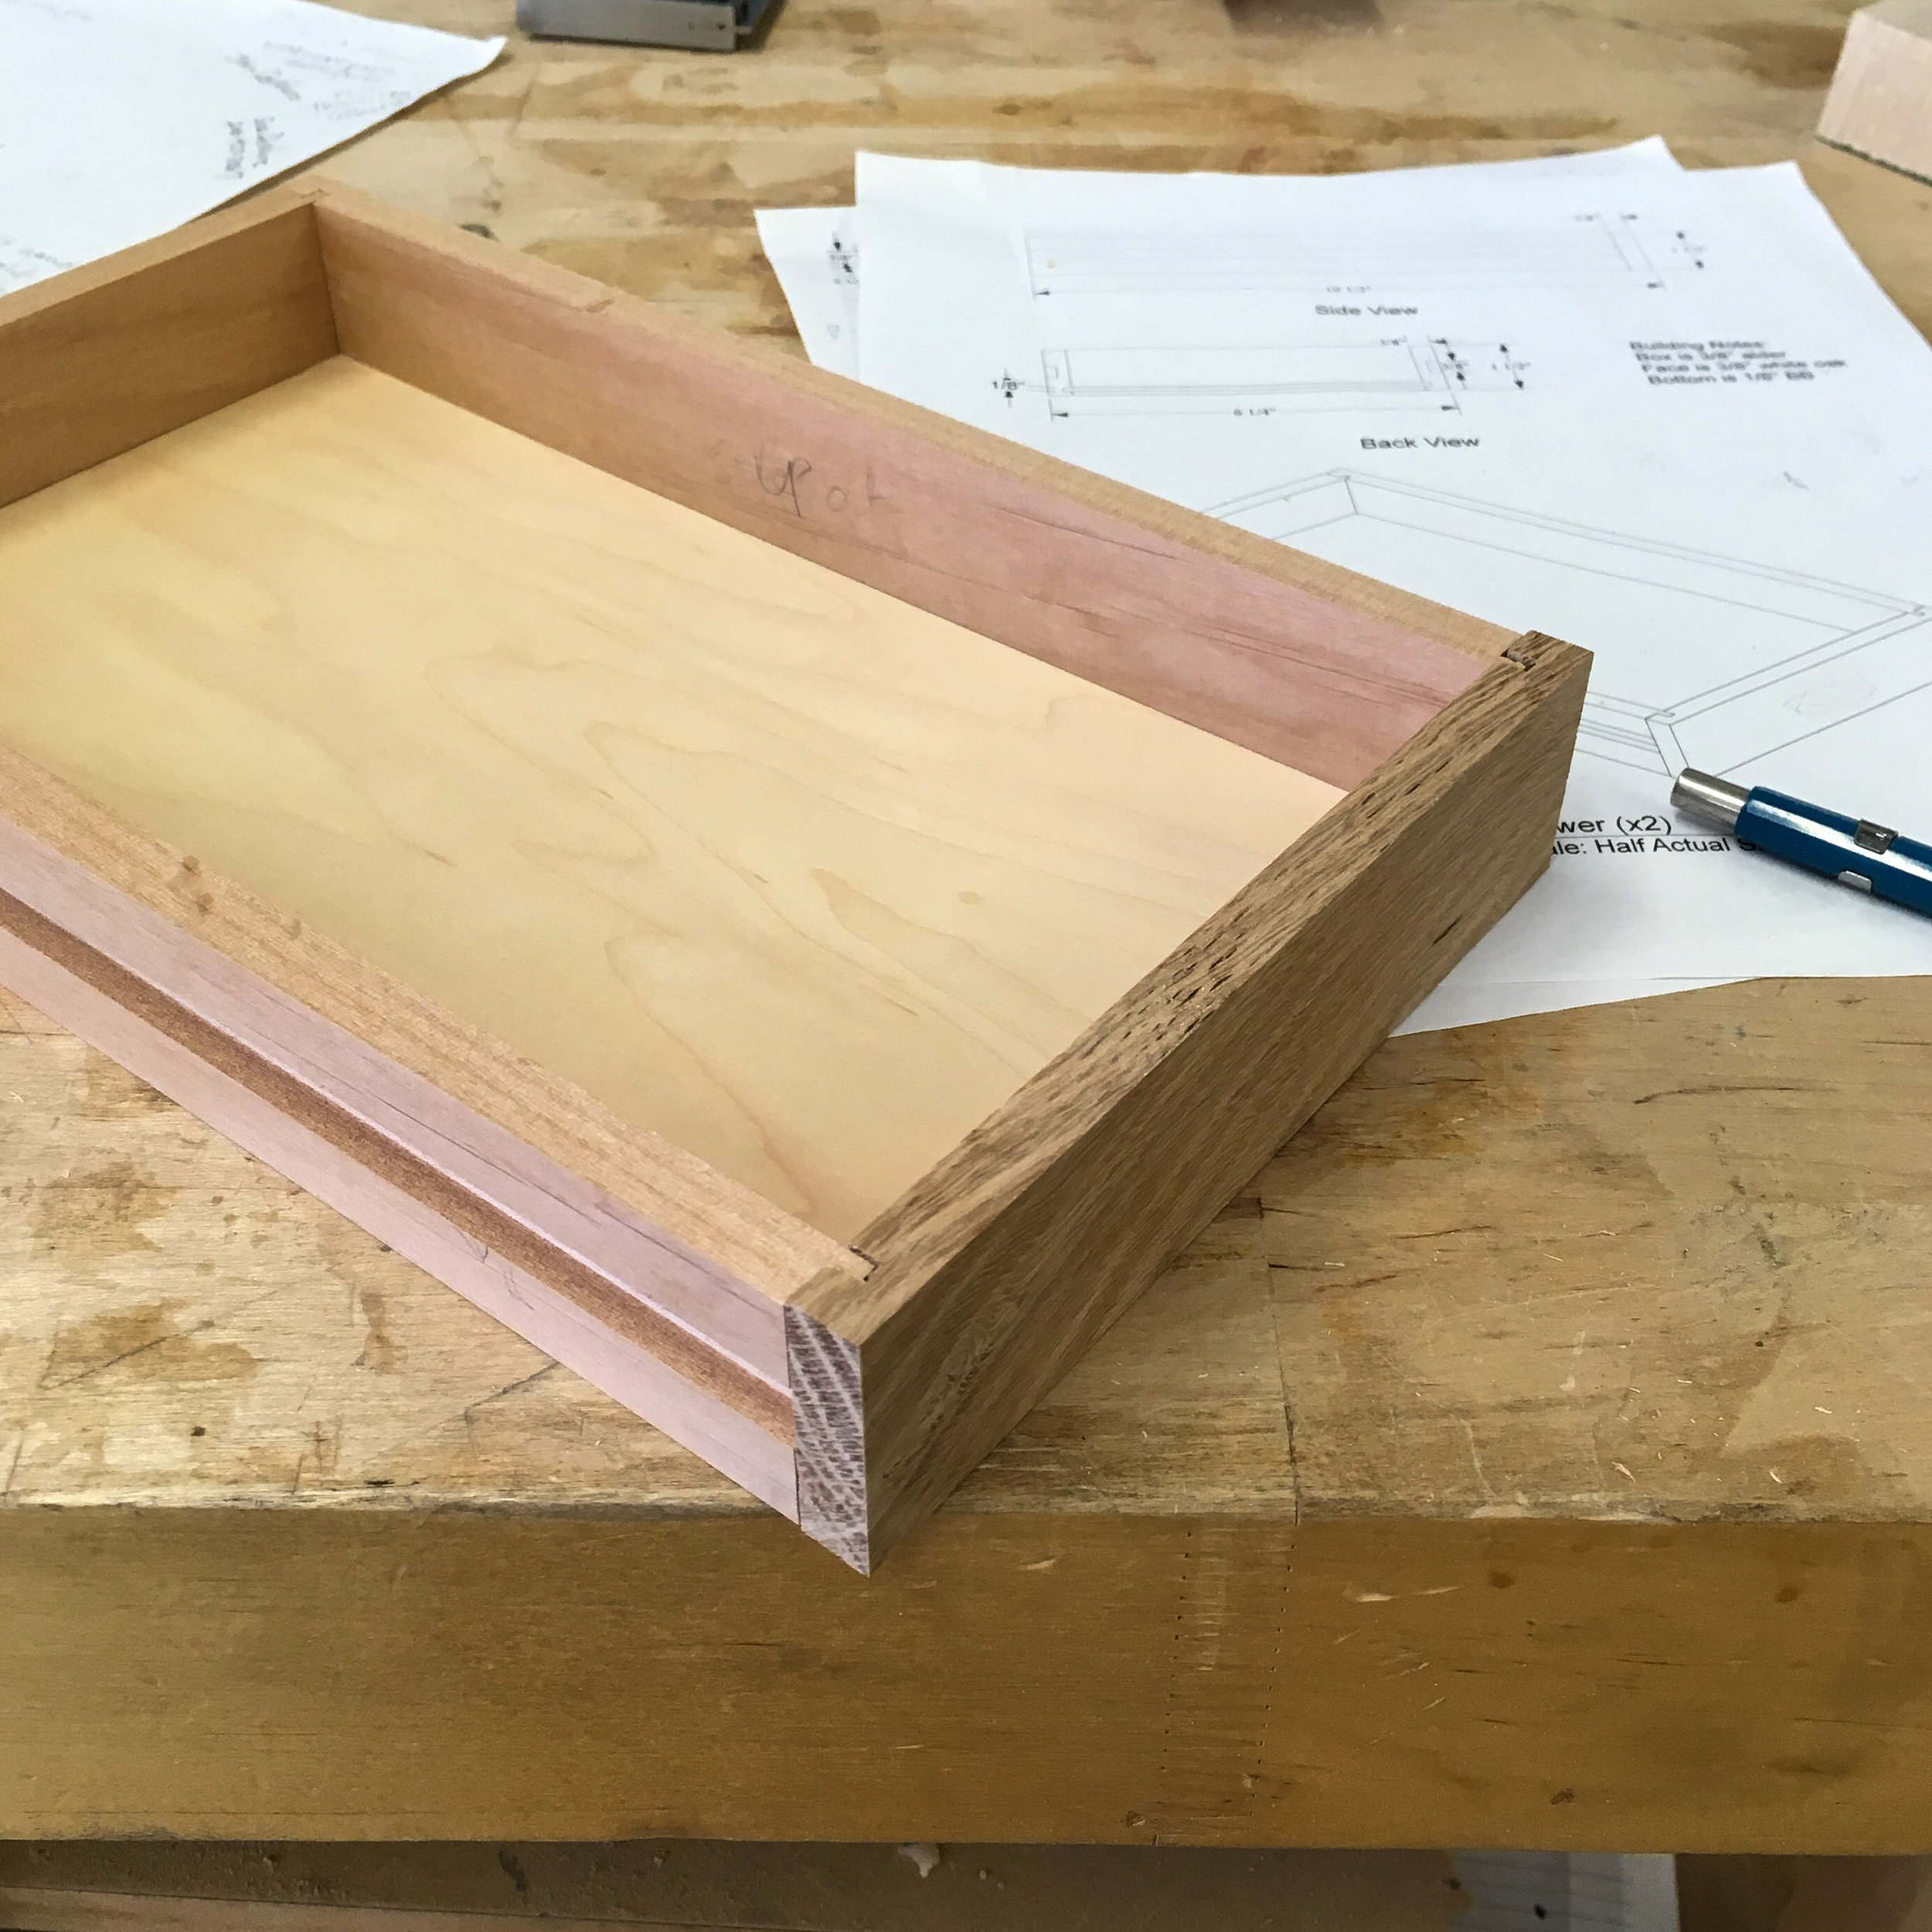 Drawer from prototype #2